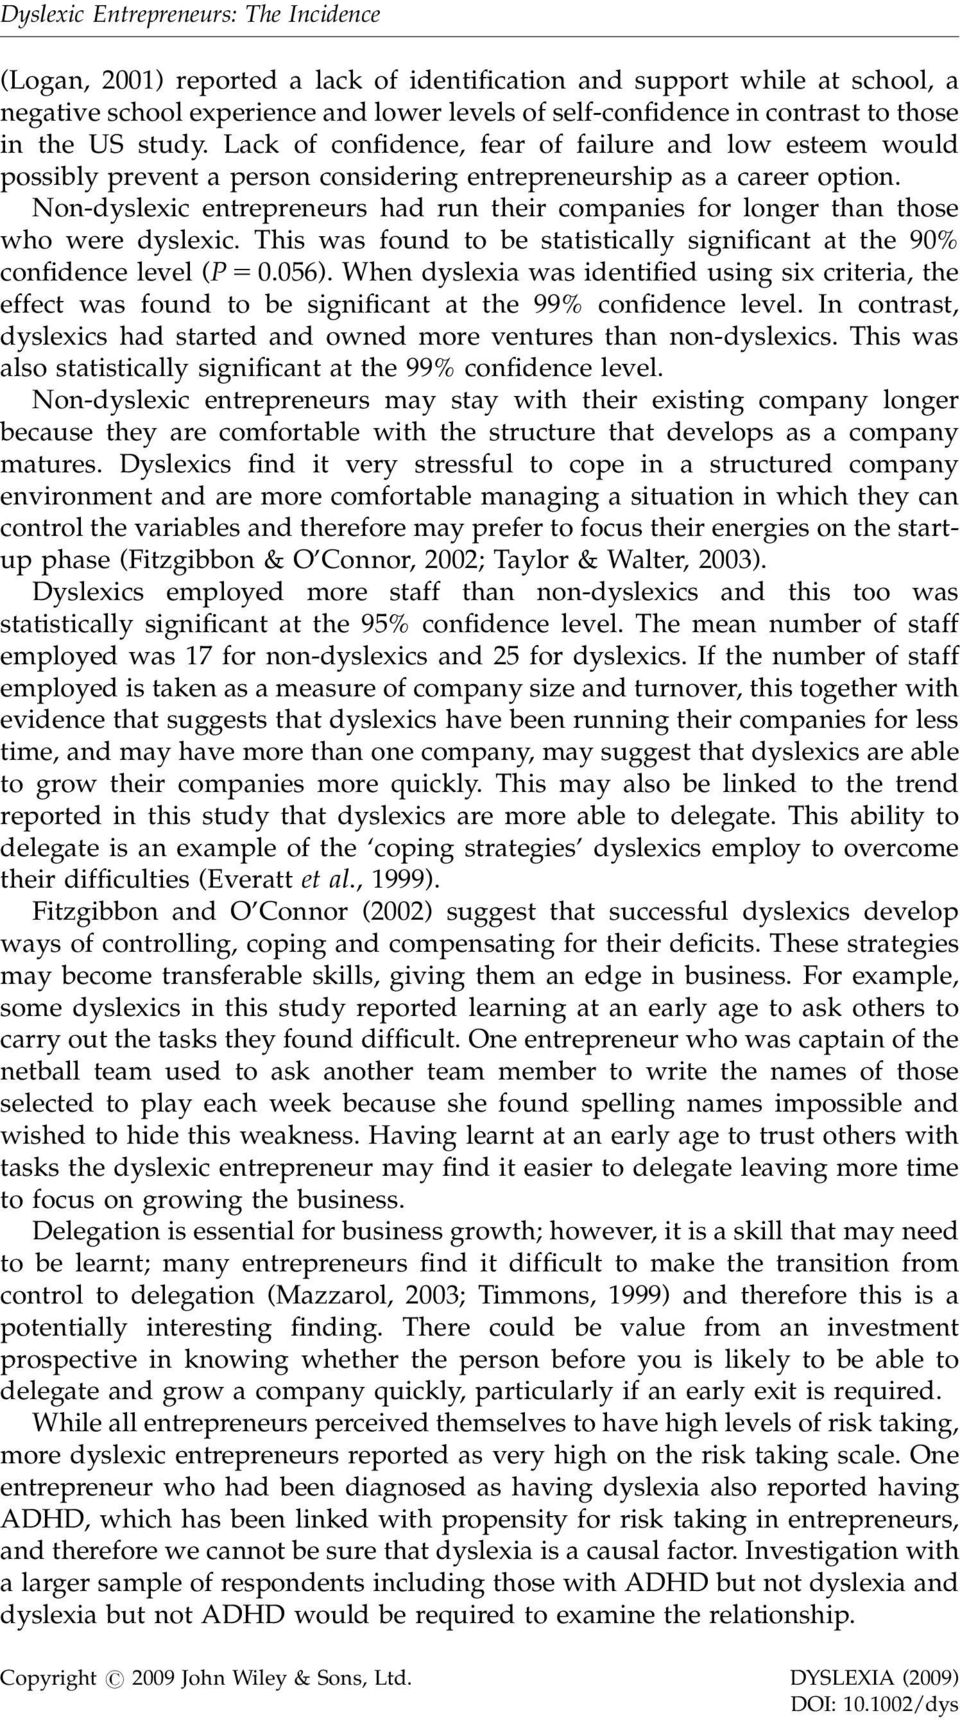 Non-dyslexic entrepreneurs had run their companies for longer than those who were dyslexic. This was found to be statistically significant at the 90% confidence level (P 5 0.056).